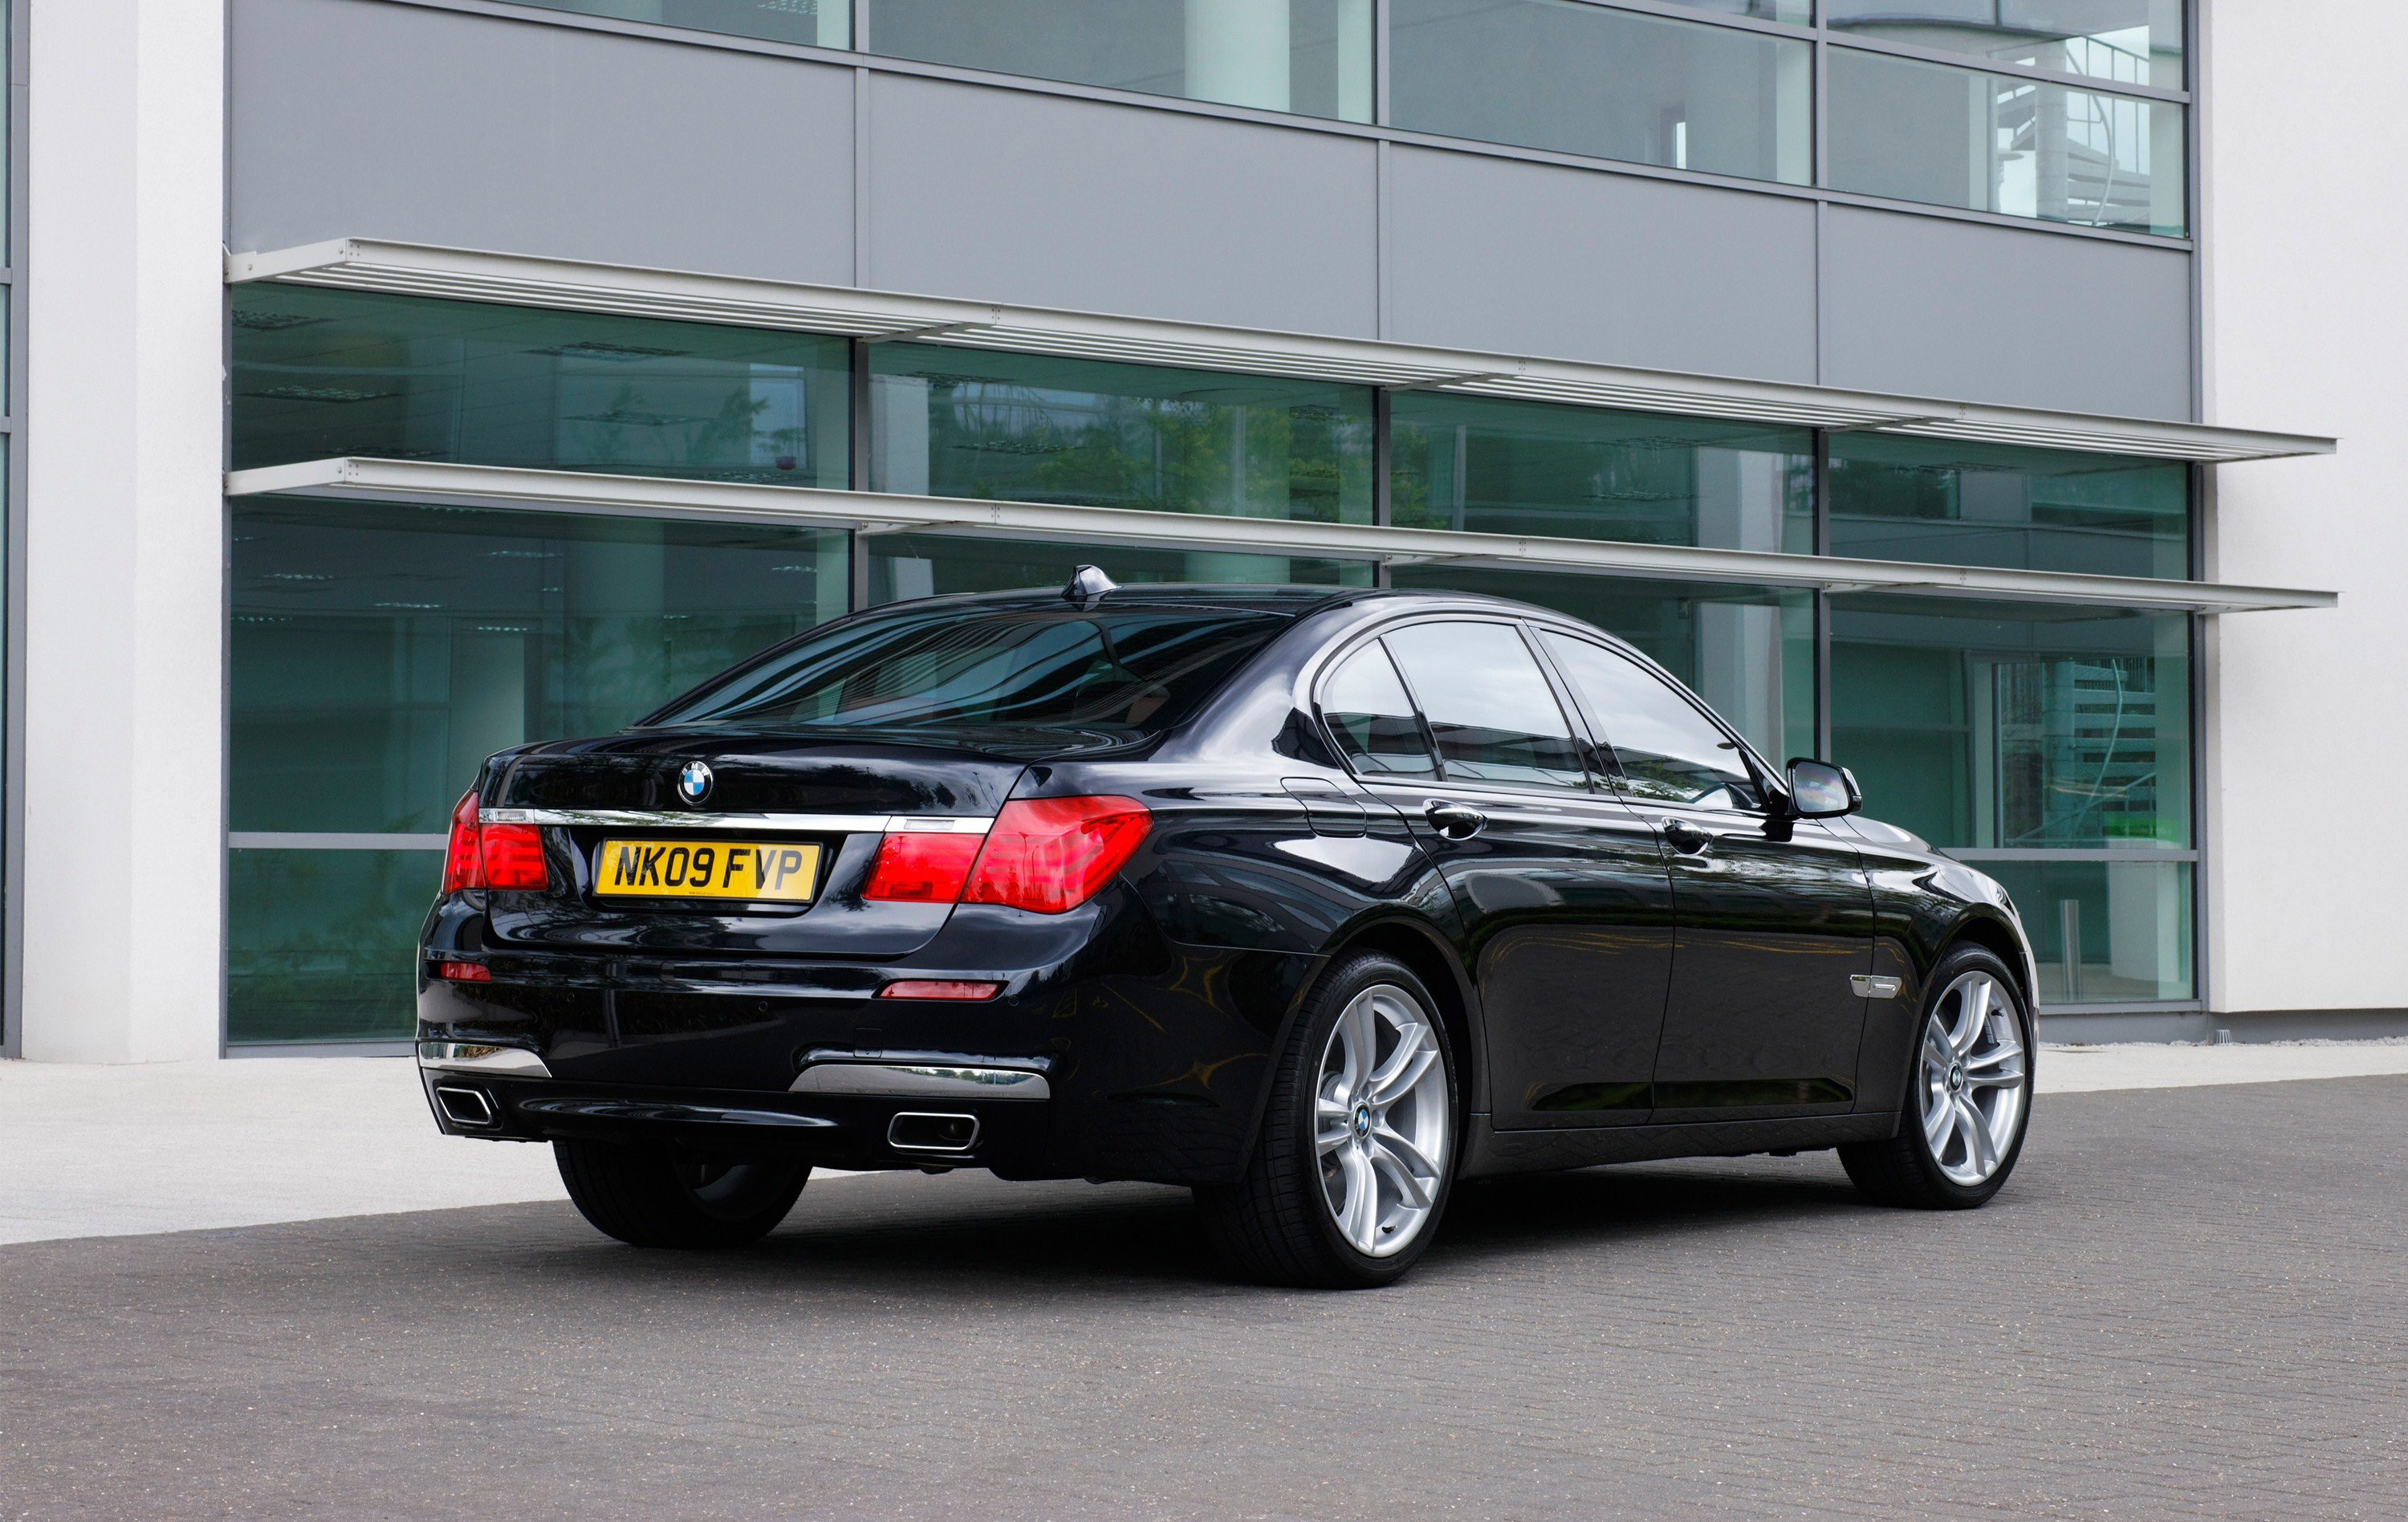 Audi a8 usata 2011 review uk